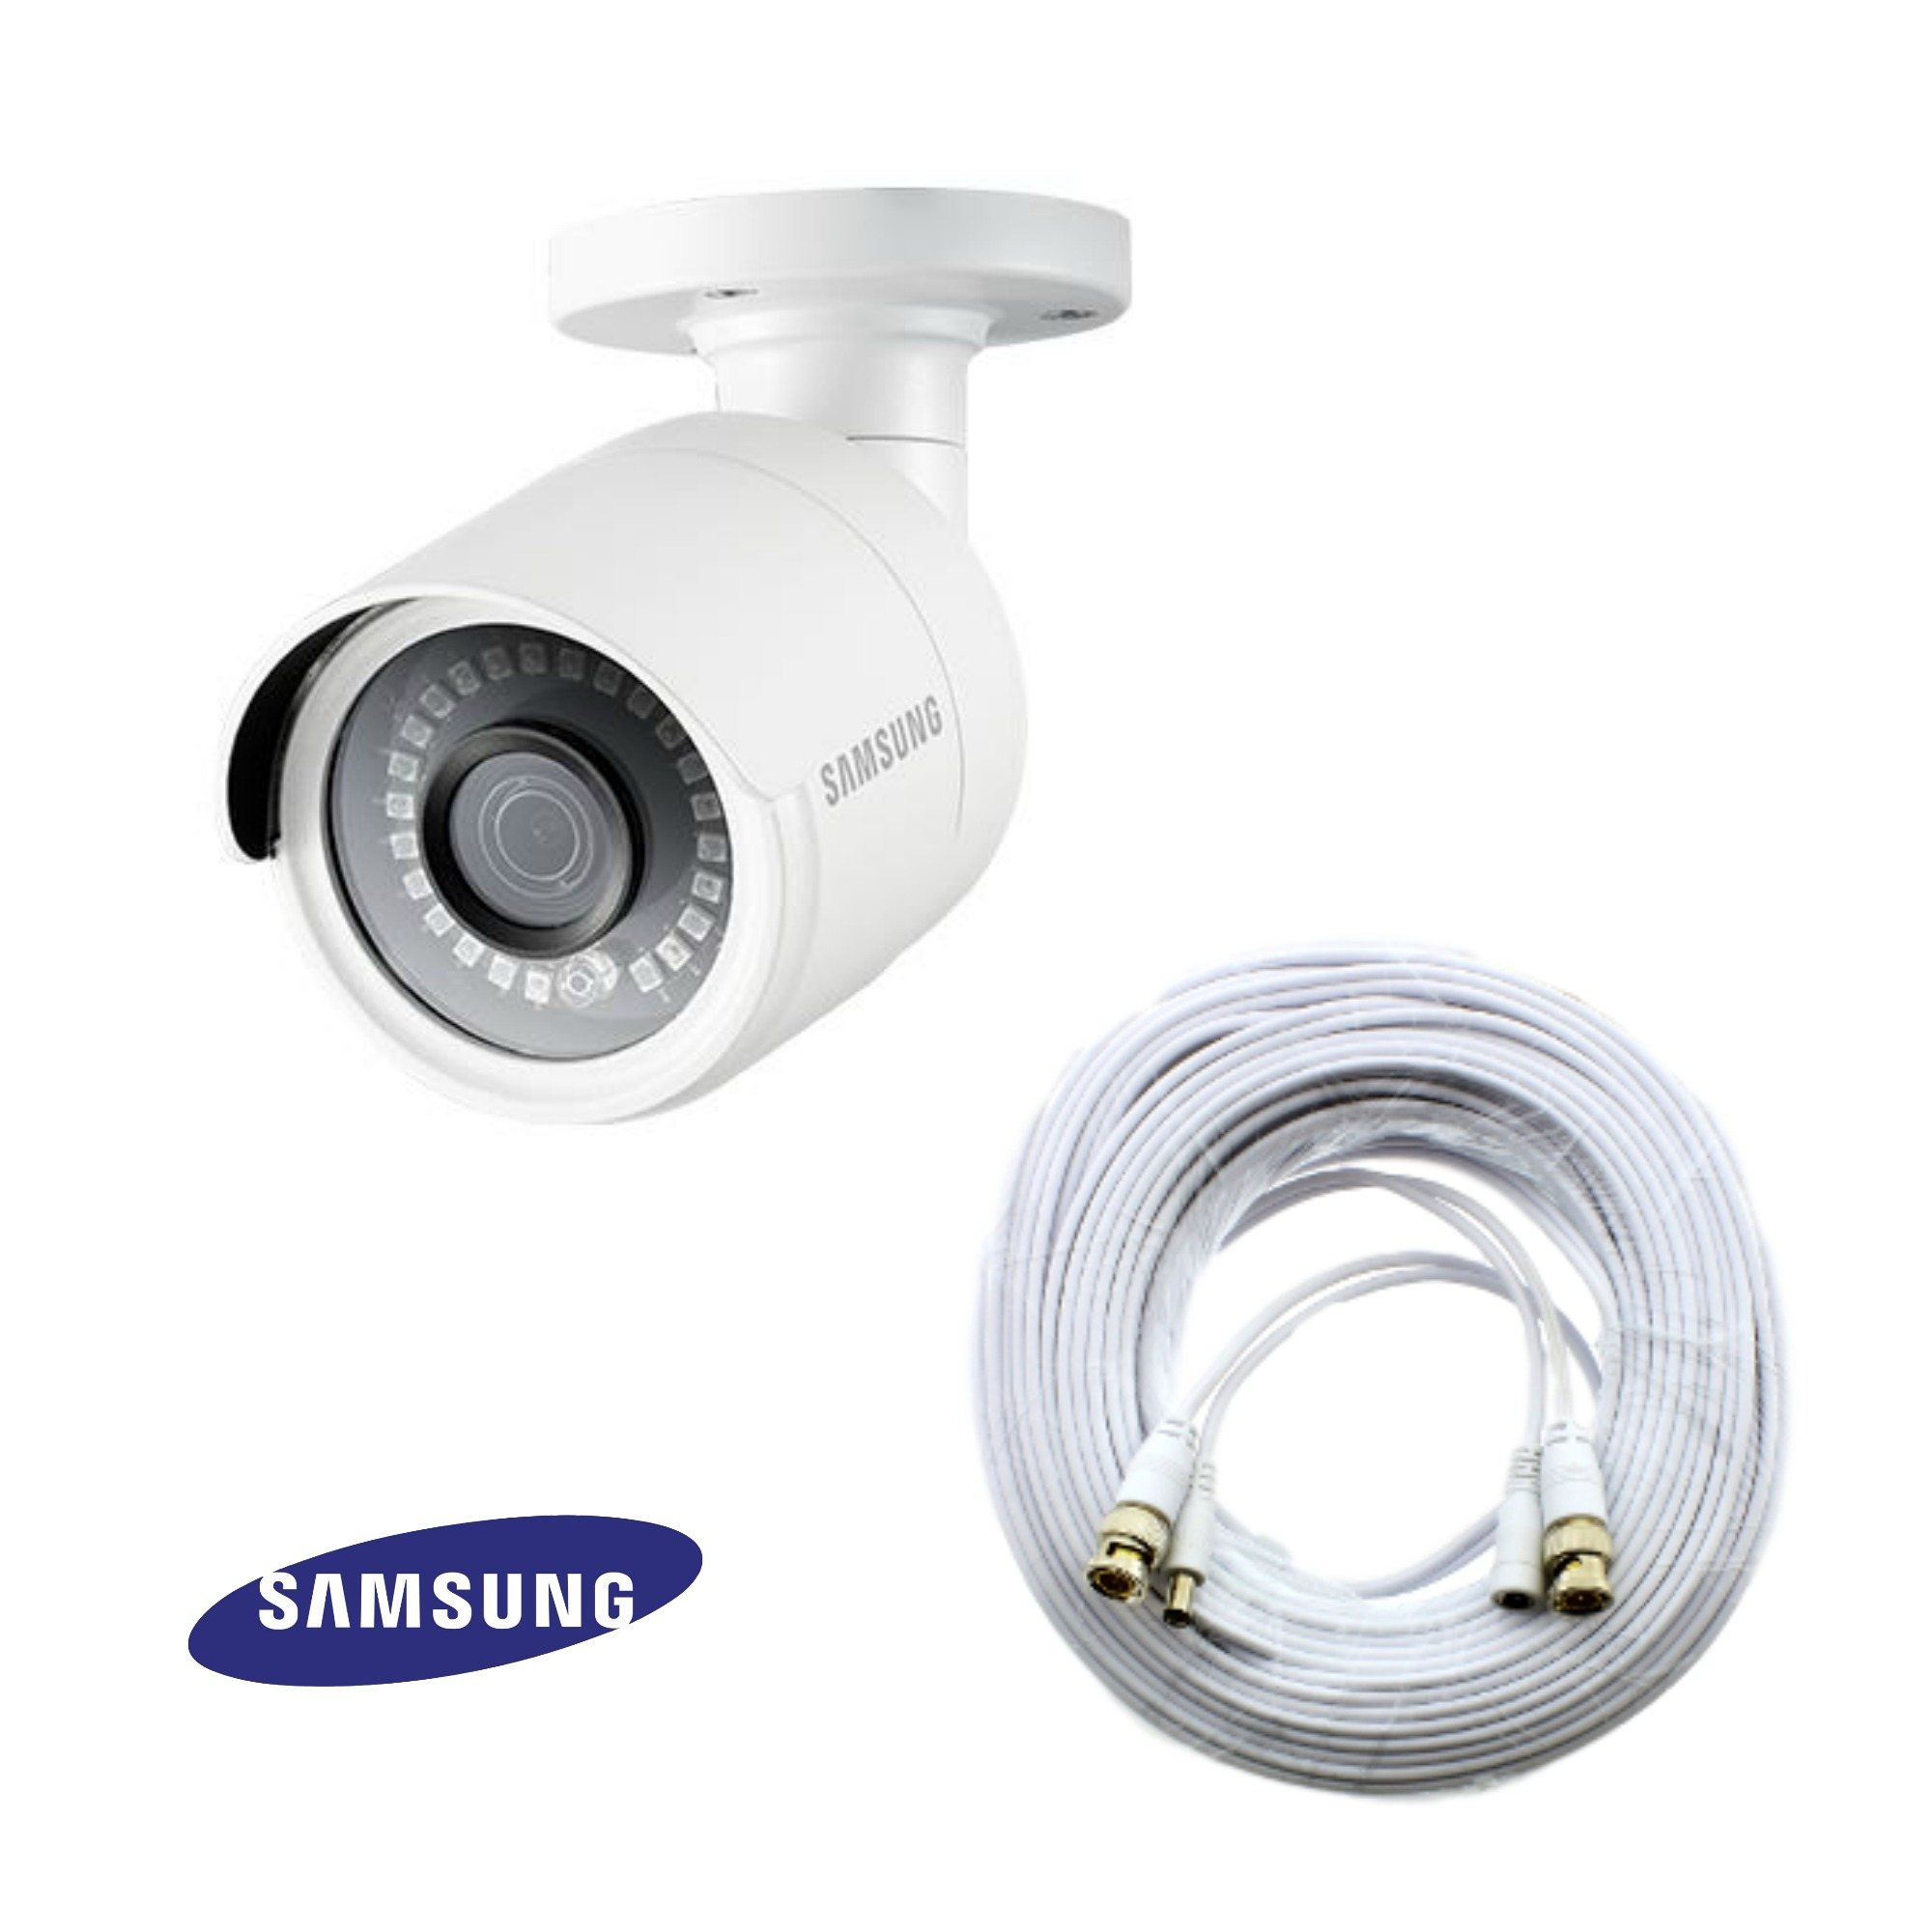 Samsung SDC-89440BFN Security Camera